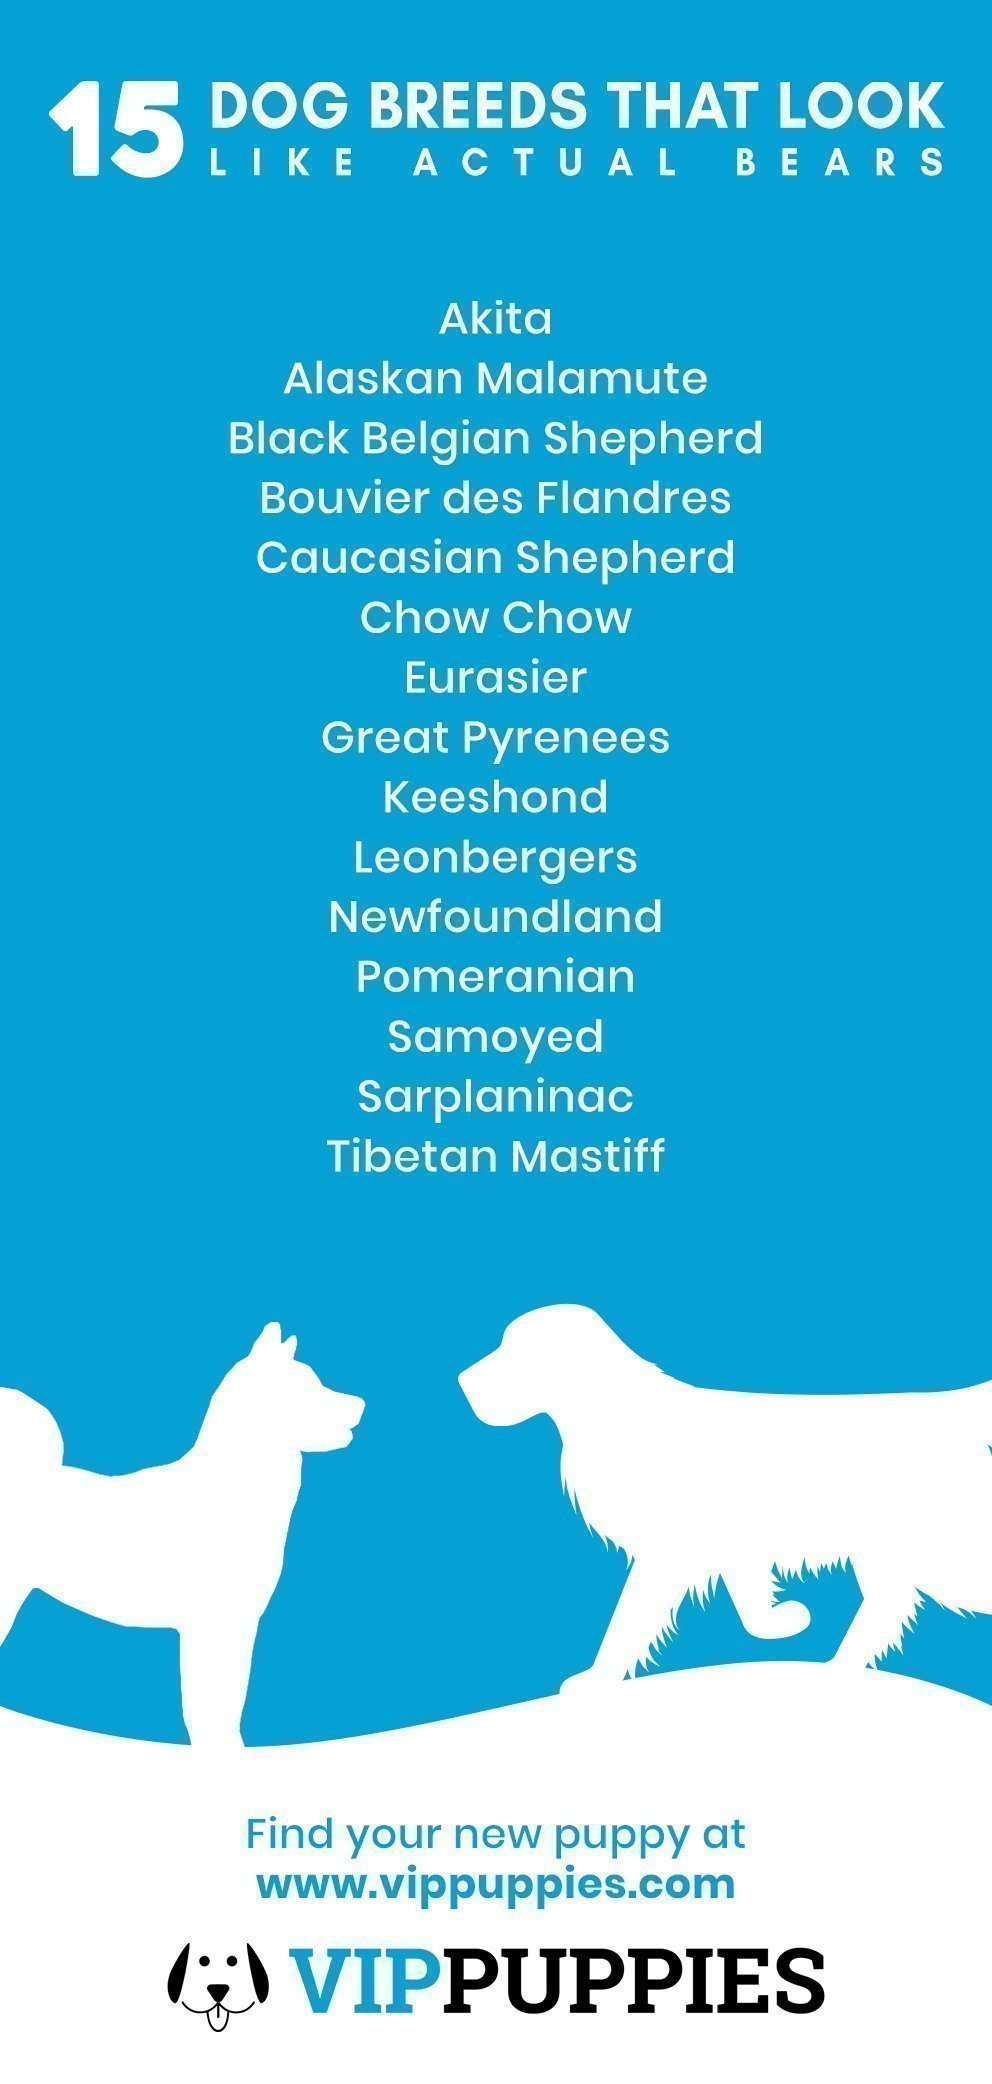 15 dog breeds that look like actual bears infographic